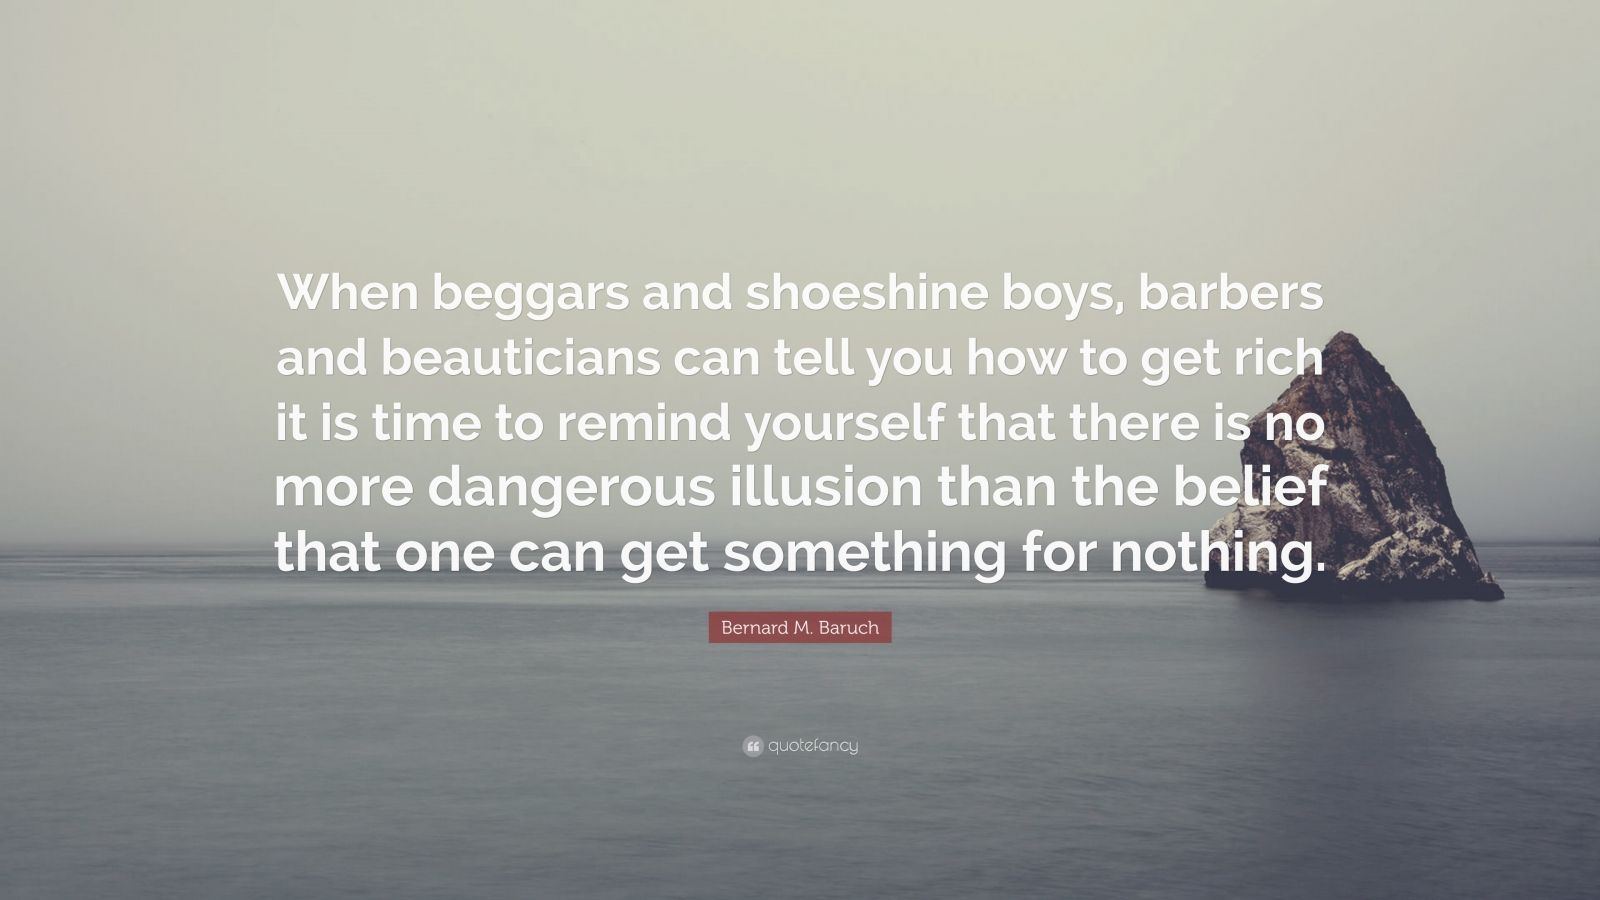 """Bernard M. Baruch Quote: """"When beggars and shoeshine boys, barbers and beauticians can tell you how to get rich it is time to remind yourself that there is no more dangerous illusion than the belief that one can get something for nothing."""""""